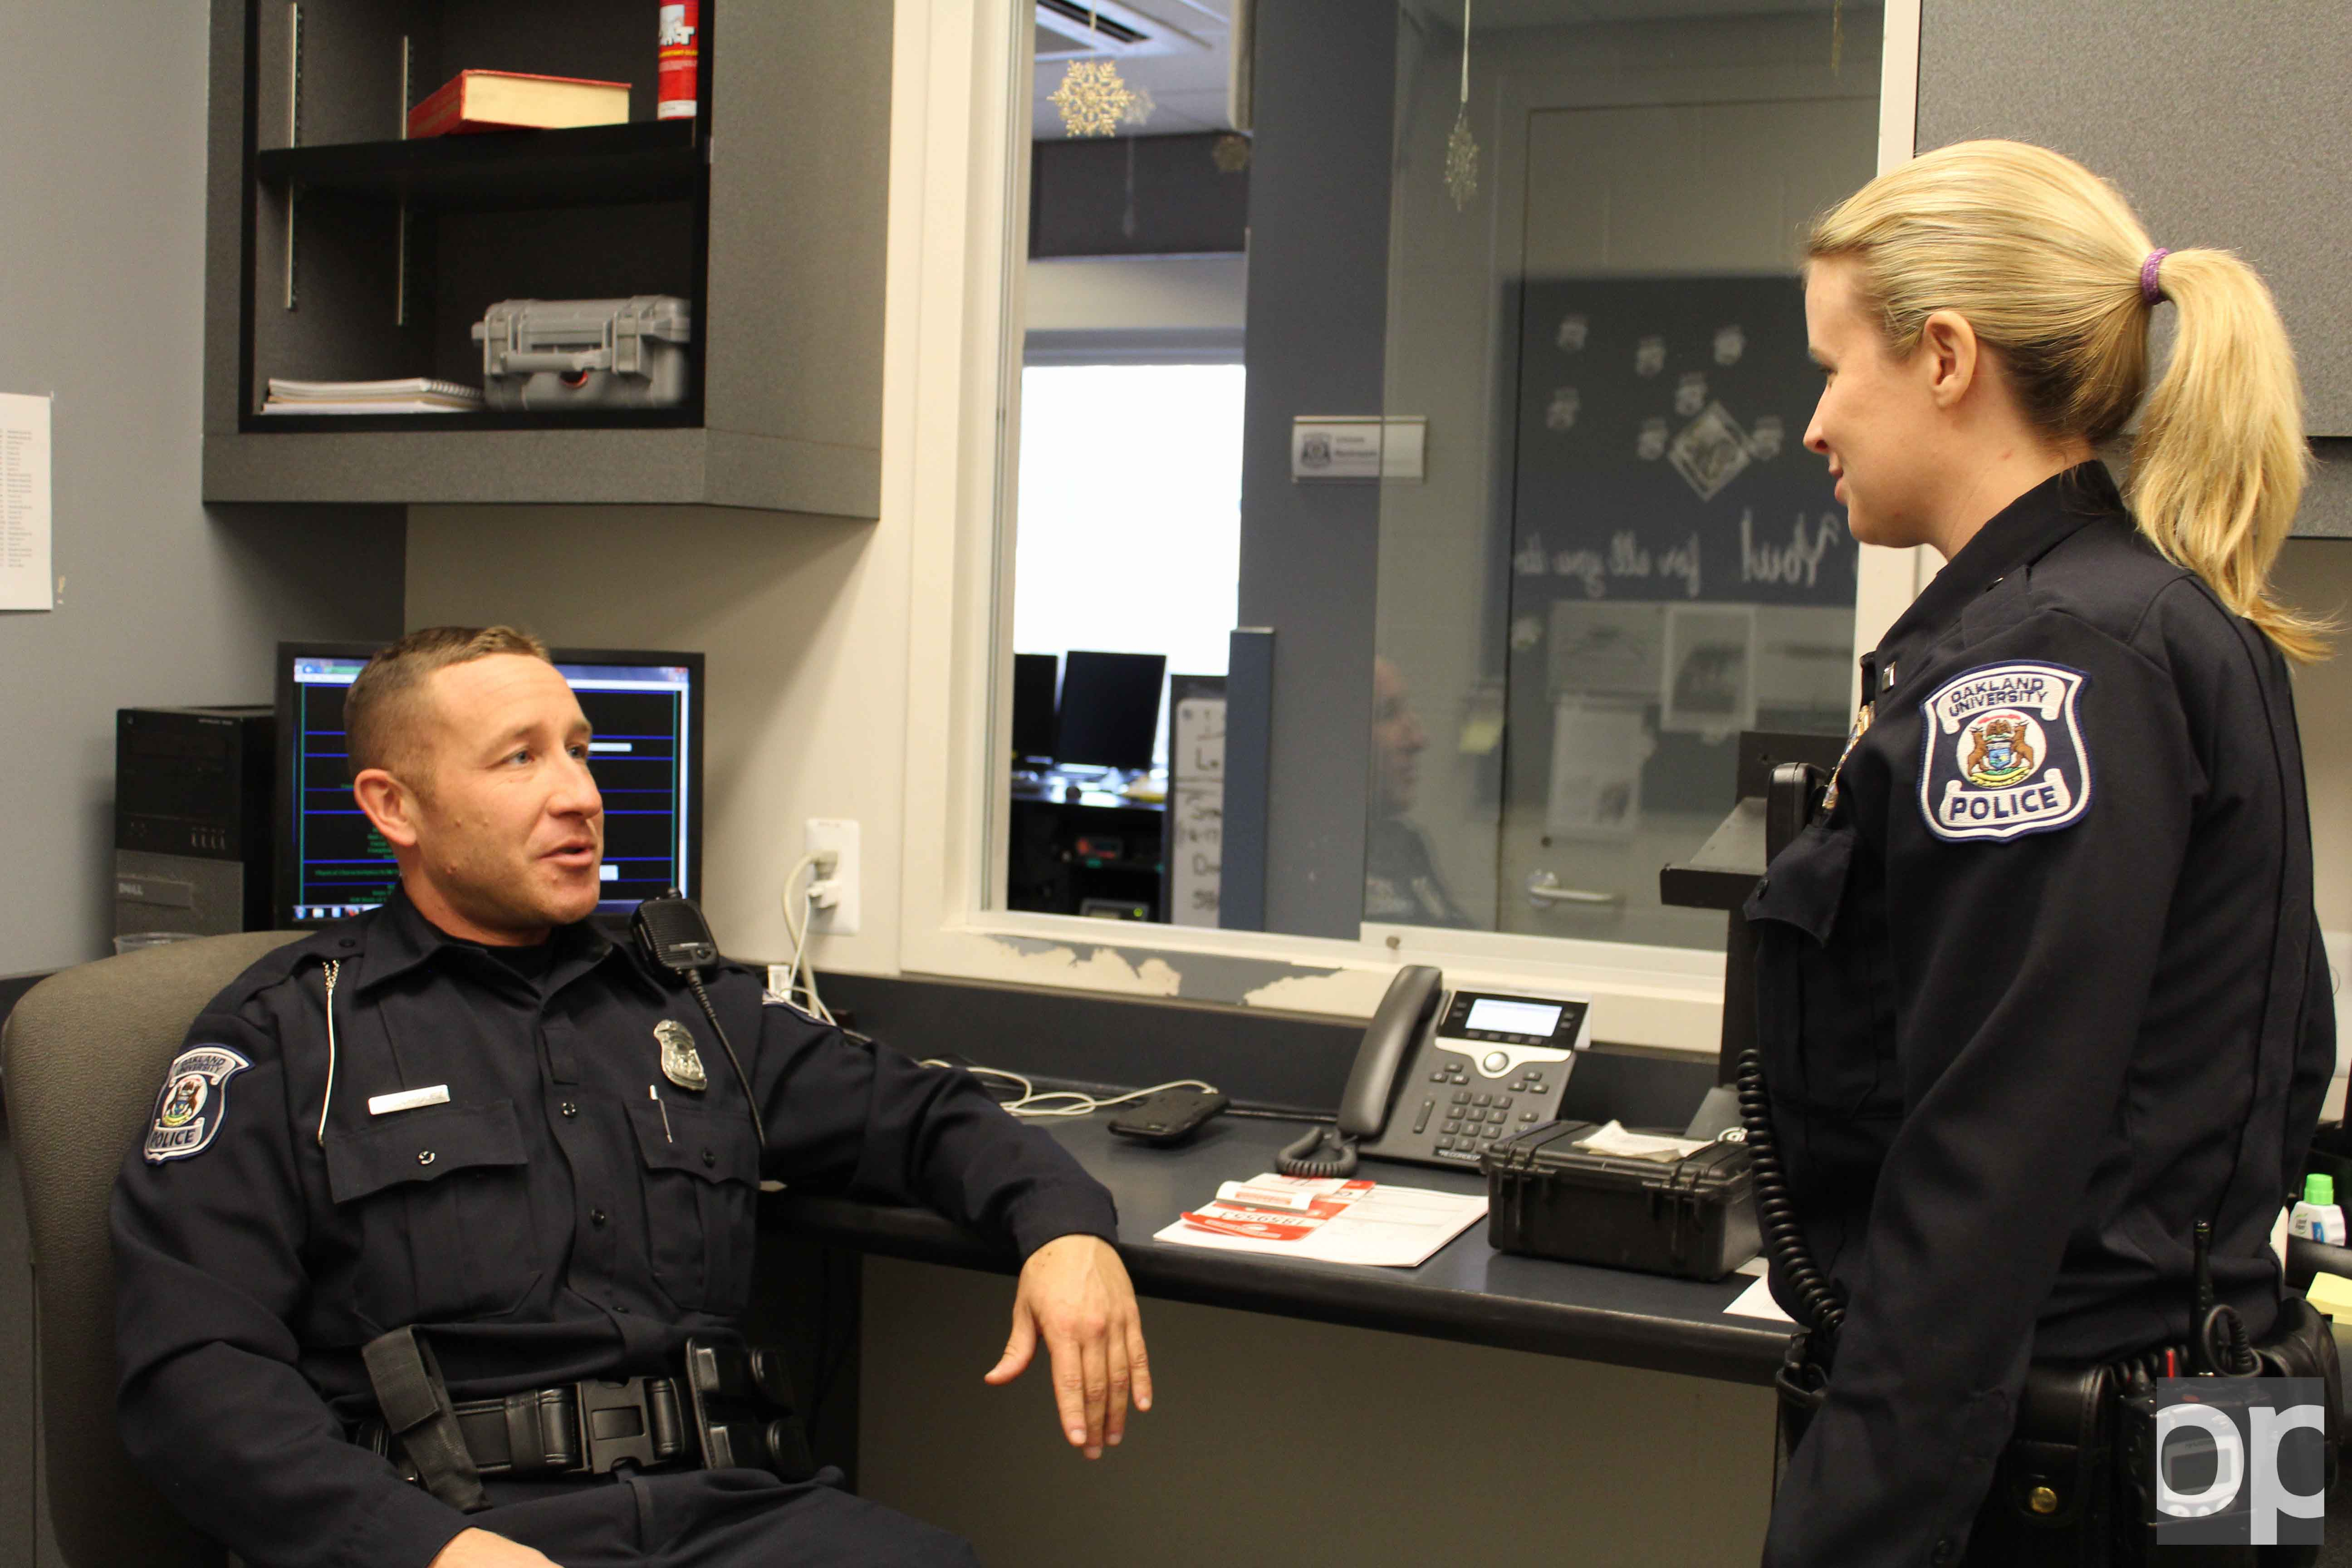 Officer Dwayne Rodriguez​ (left) and Lieutenant Nicole Thompson (right) chat inside the Police and Support Services building.